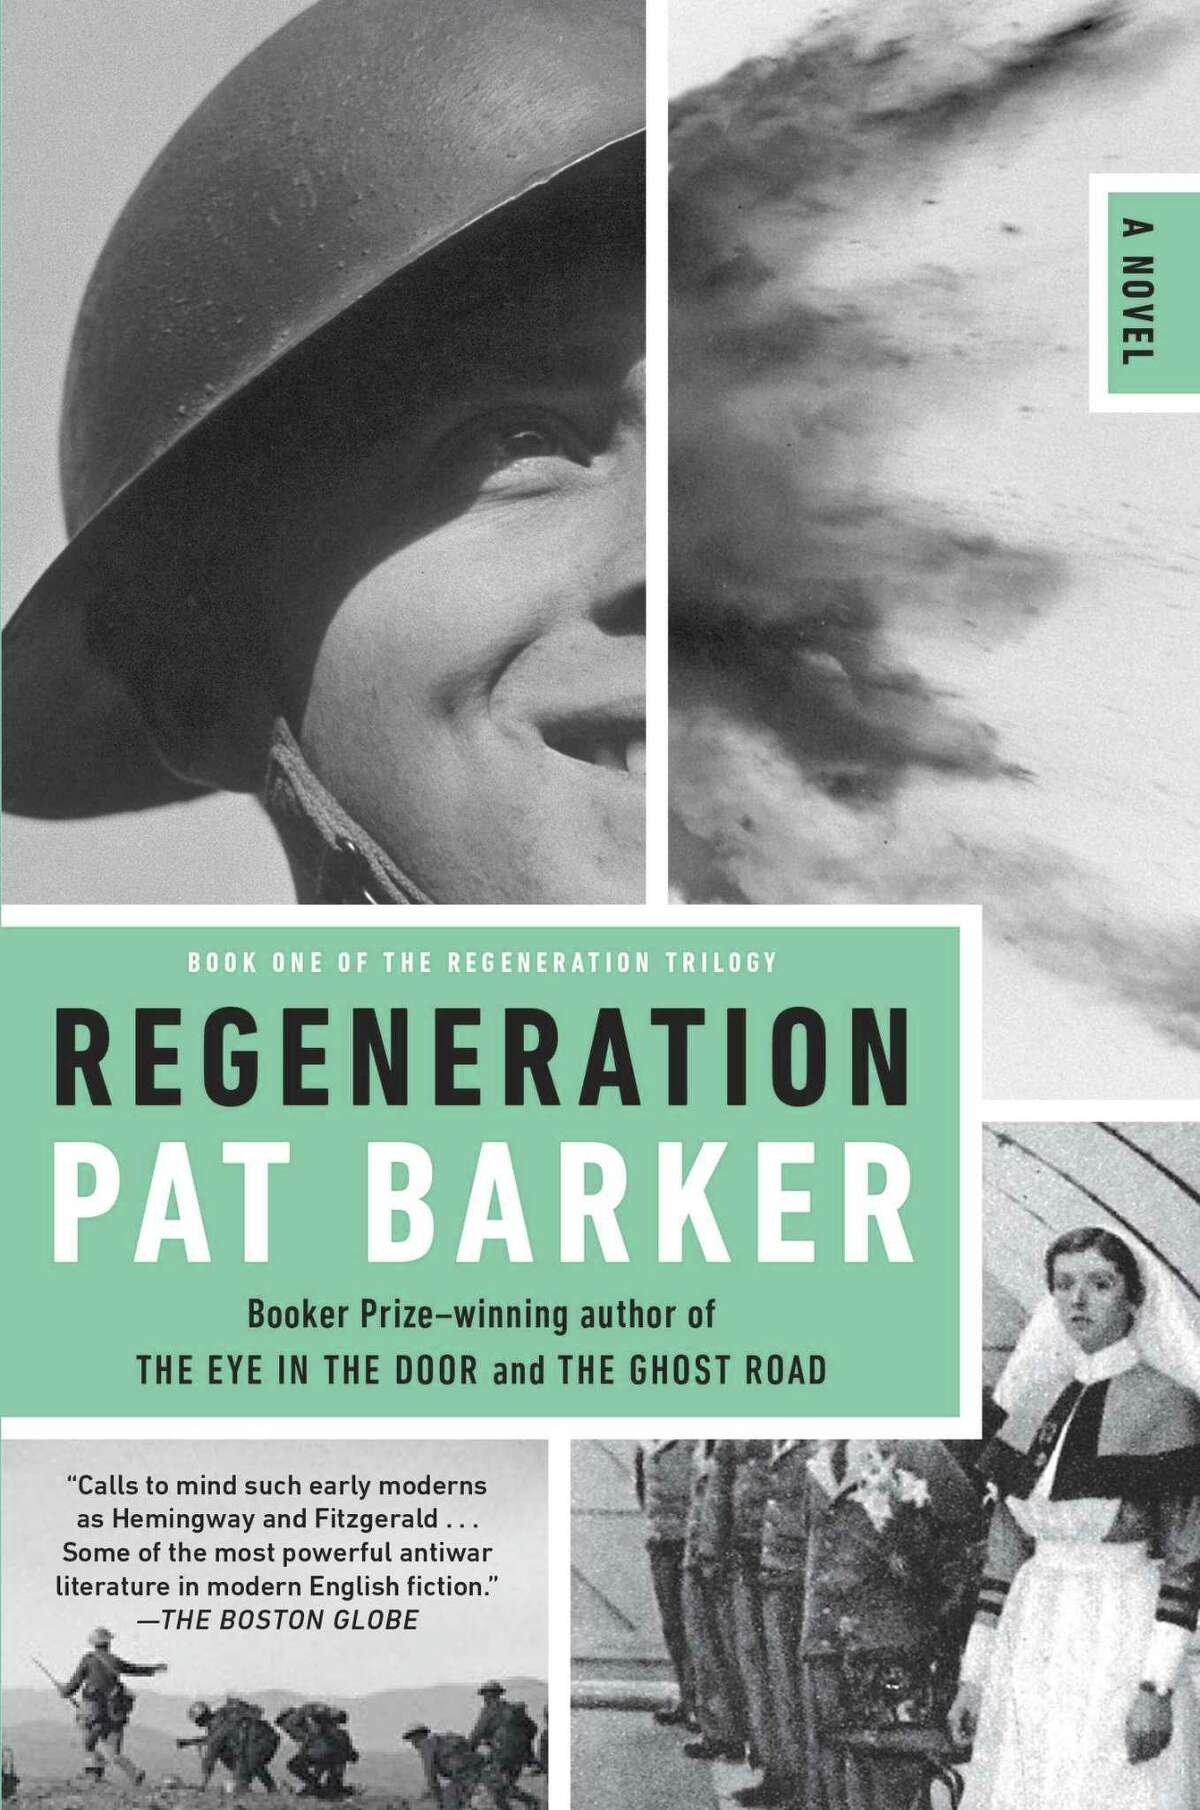 Regeneration by Pat Barker is the January 2018 WestportREAD's book choice.